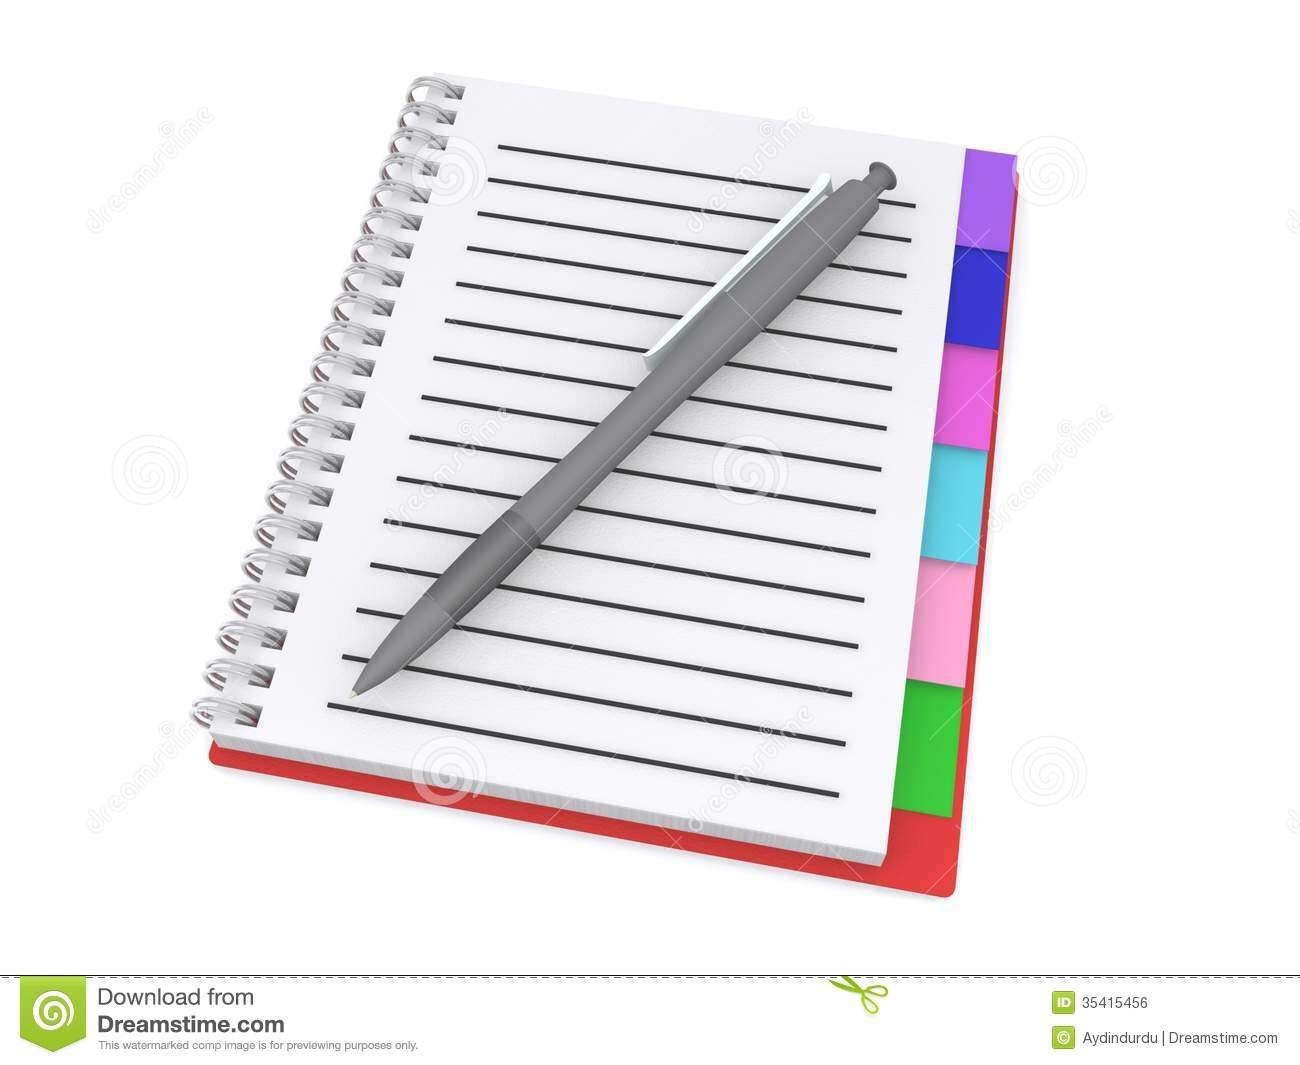 Pen clipart note book Pen Notebook Clipart Pen Clipart